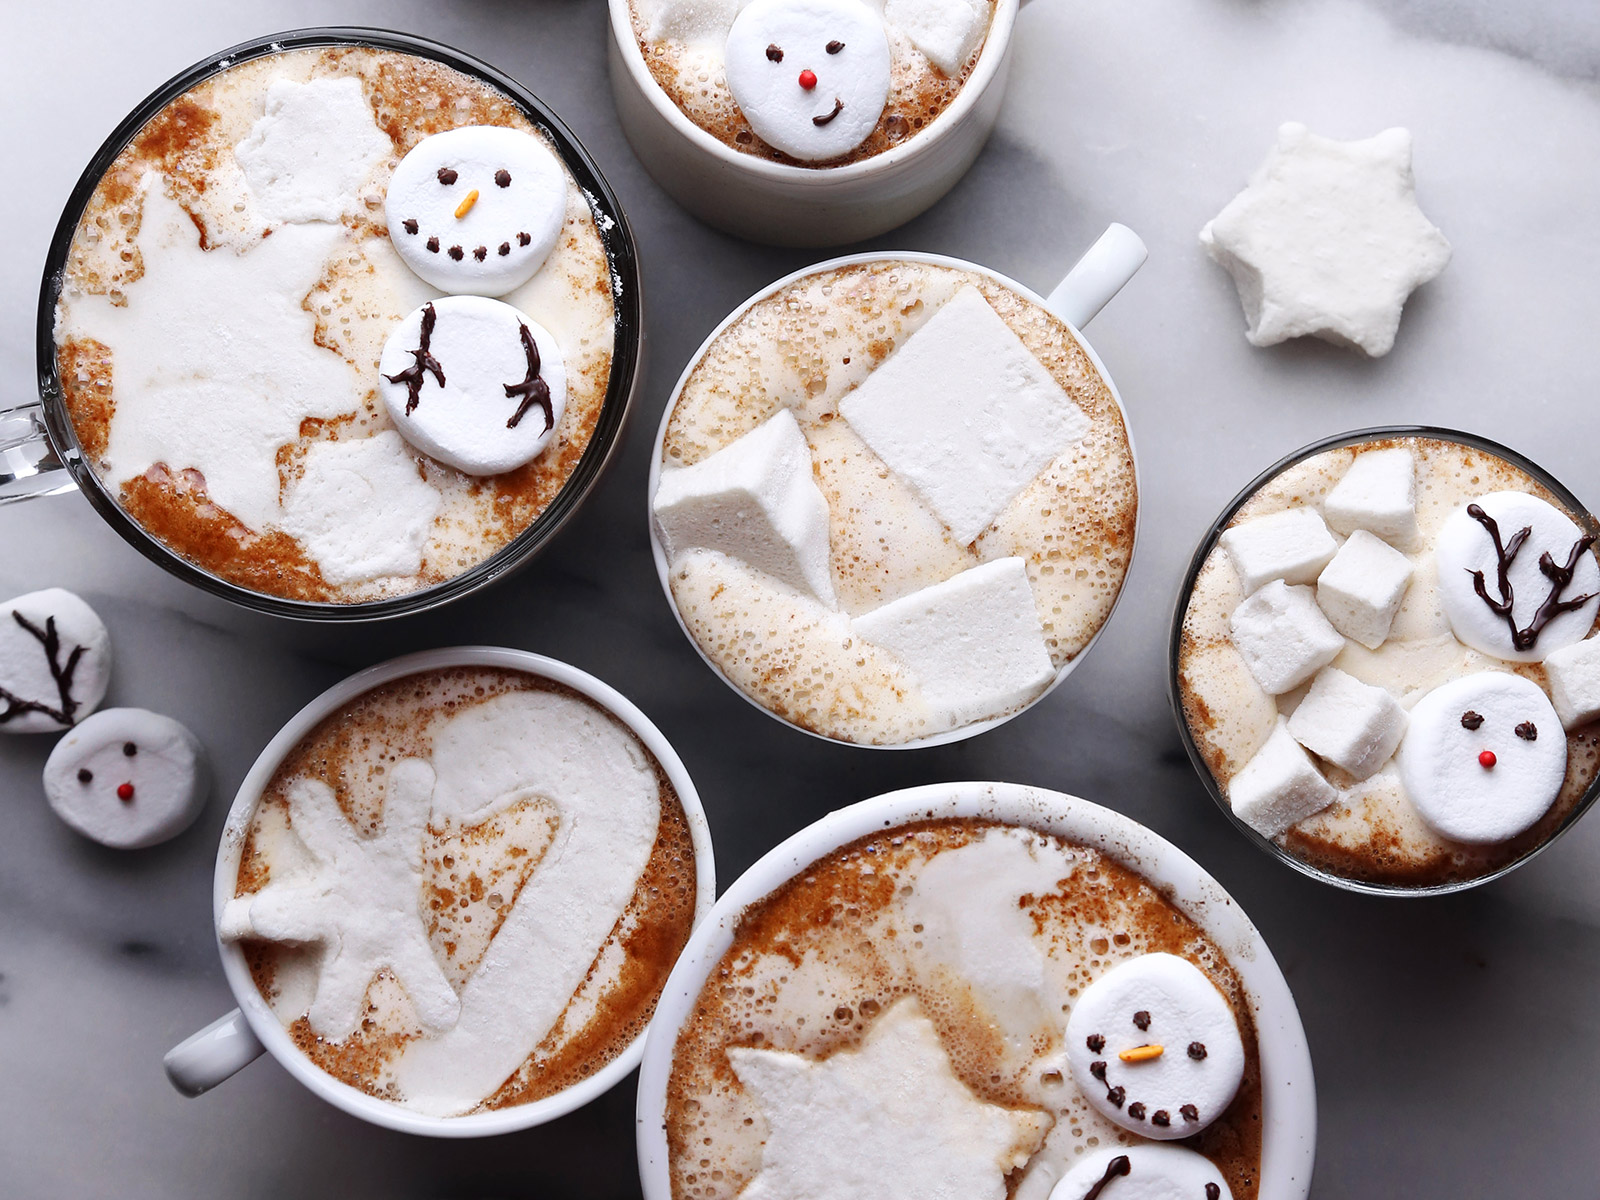 hot chocolate creations